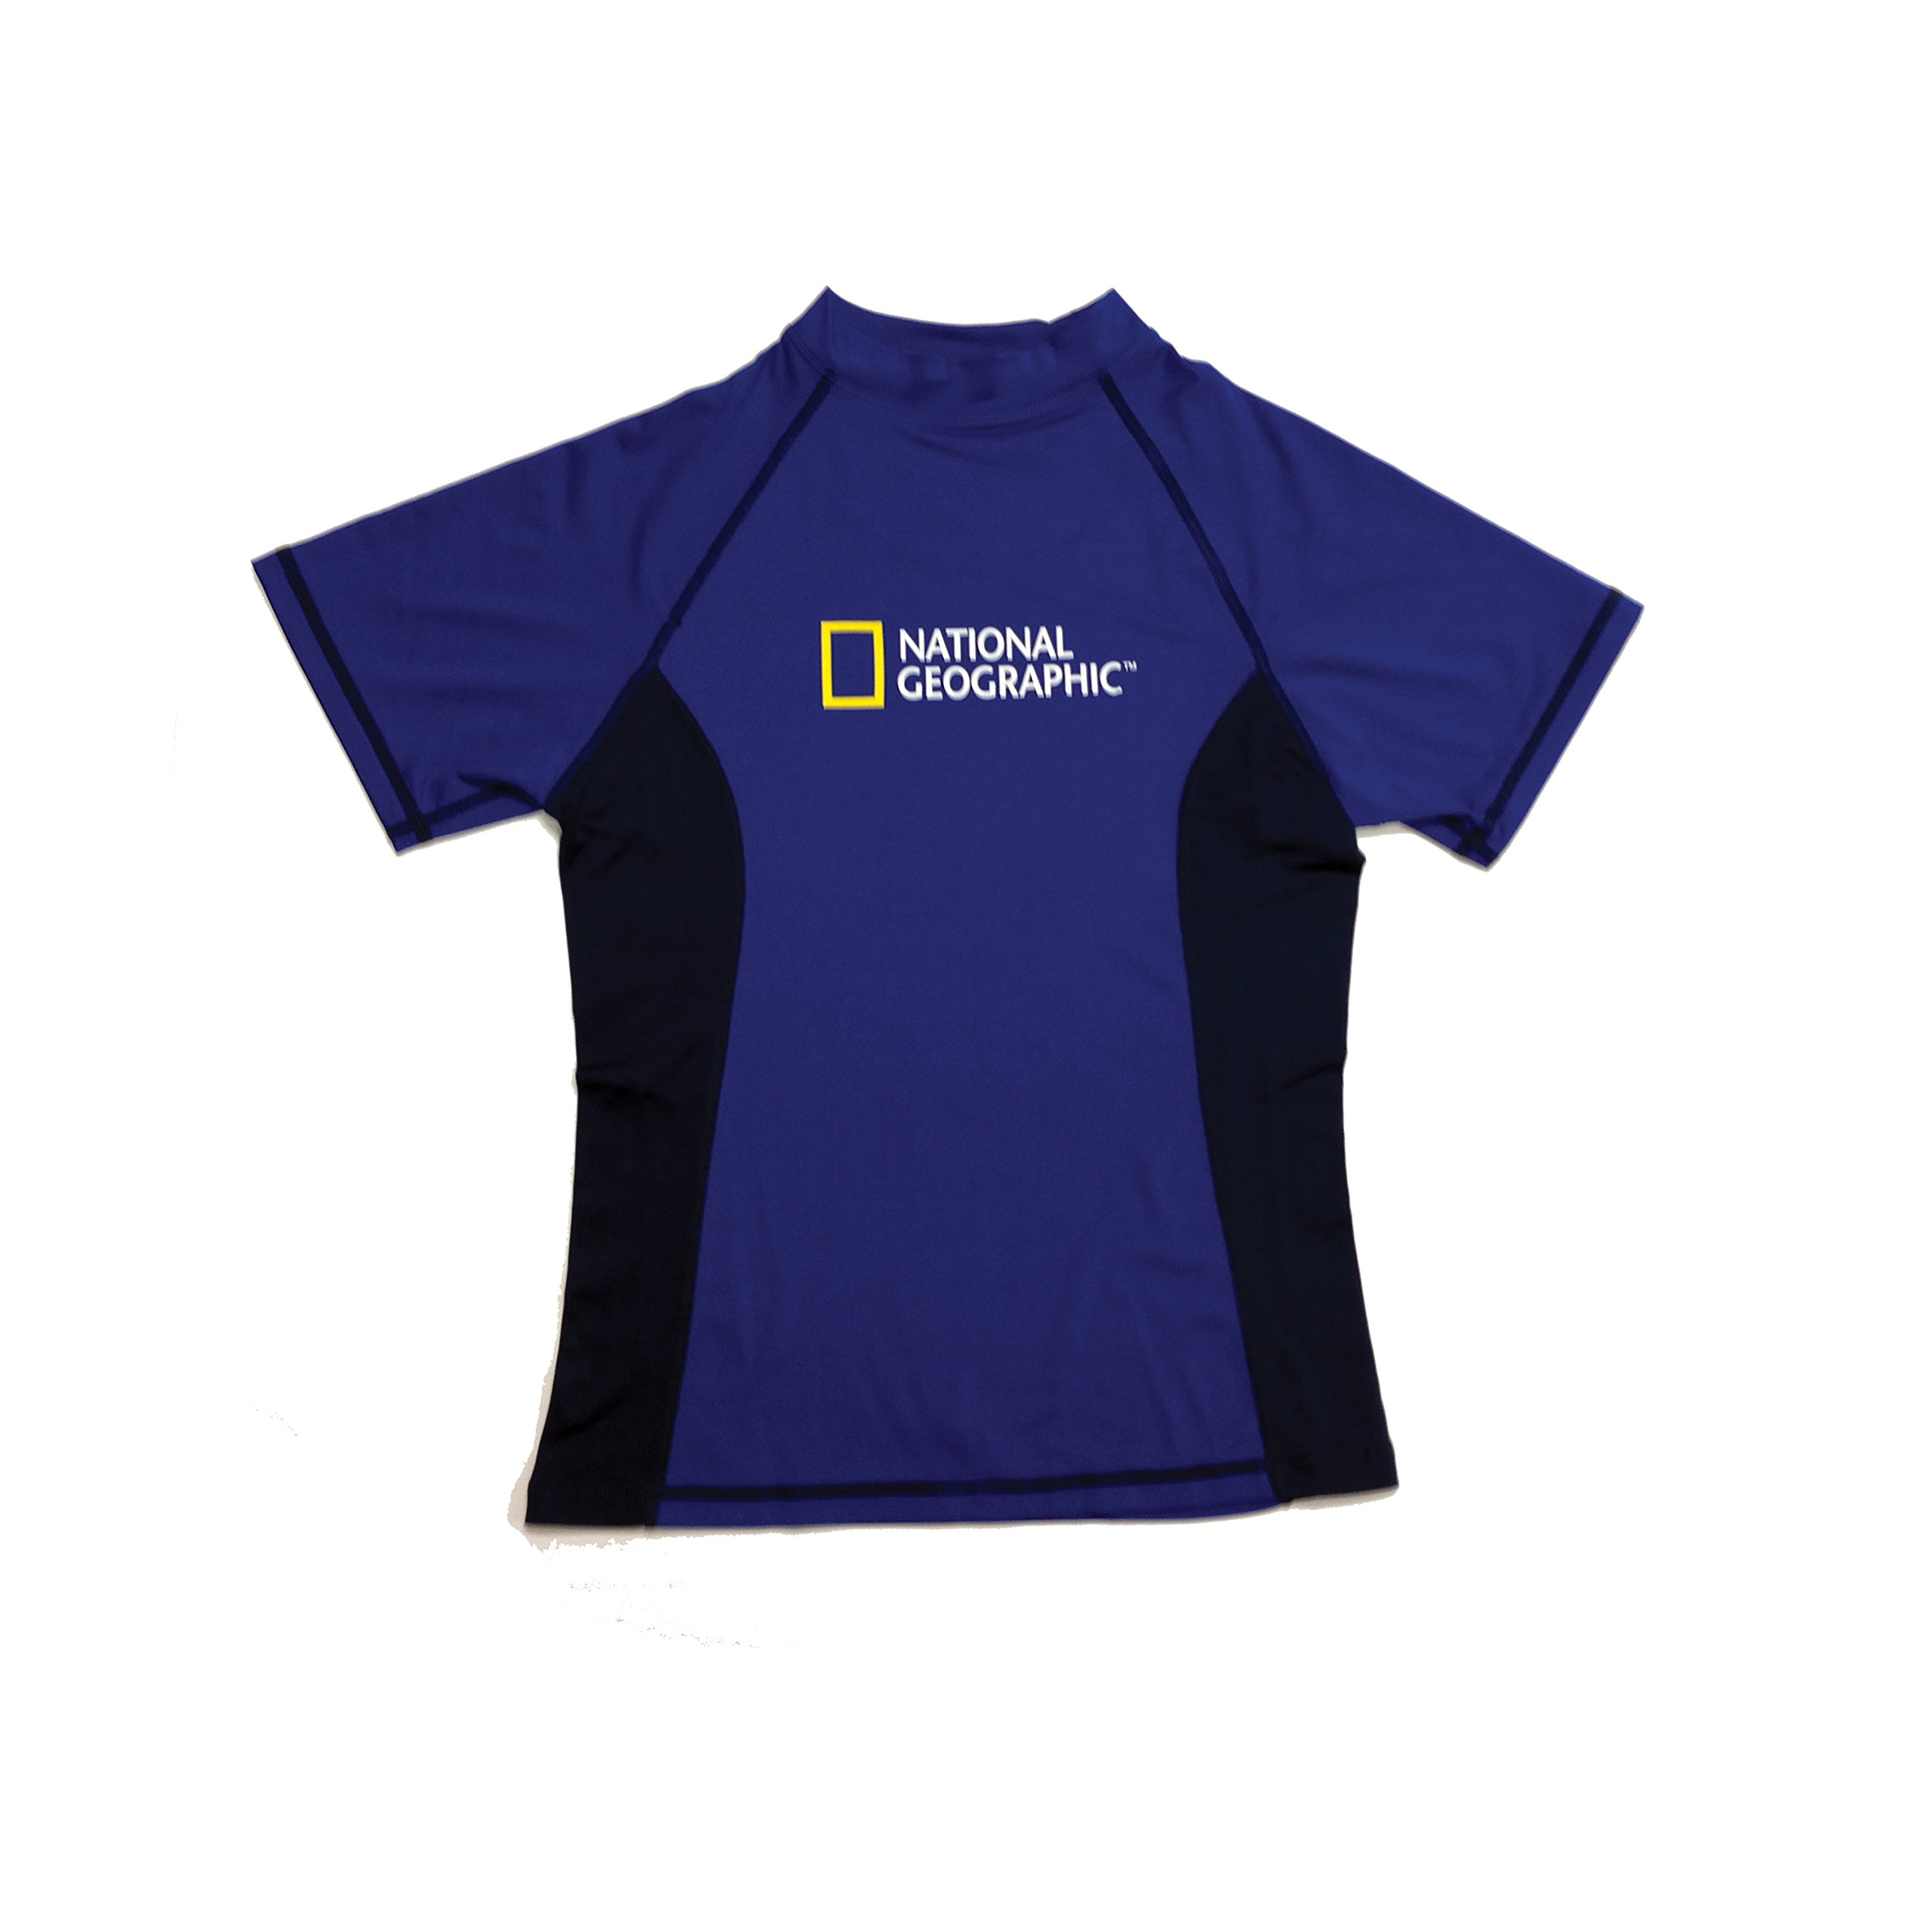 National Geographic Snorkeler 6740 Short sleeve Rash Guard Ladies Royal/Navy Small, Navy by National Geographic Snorkeler